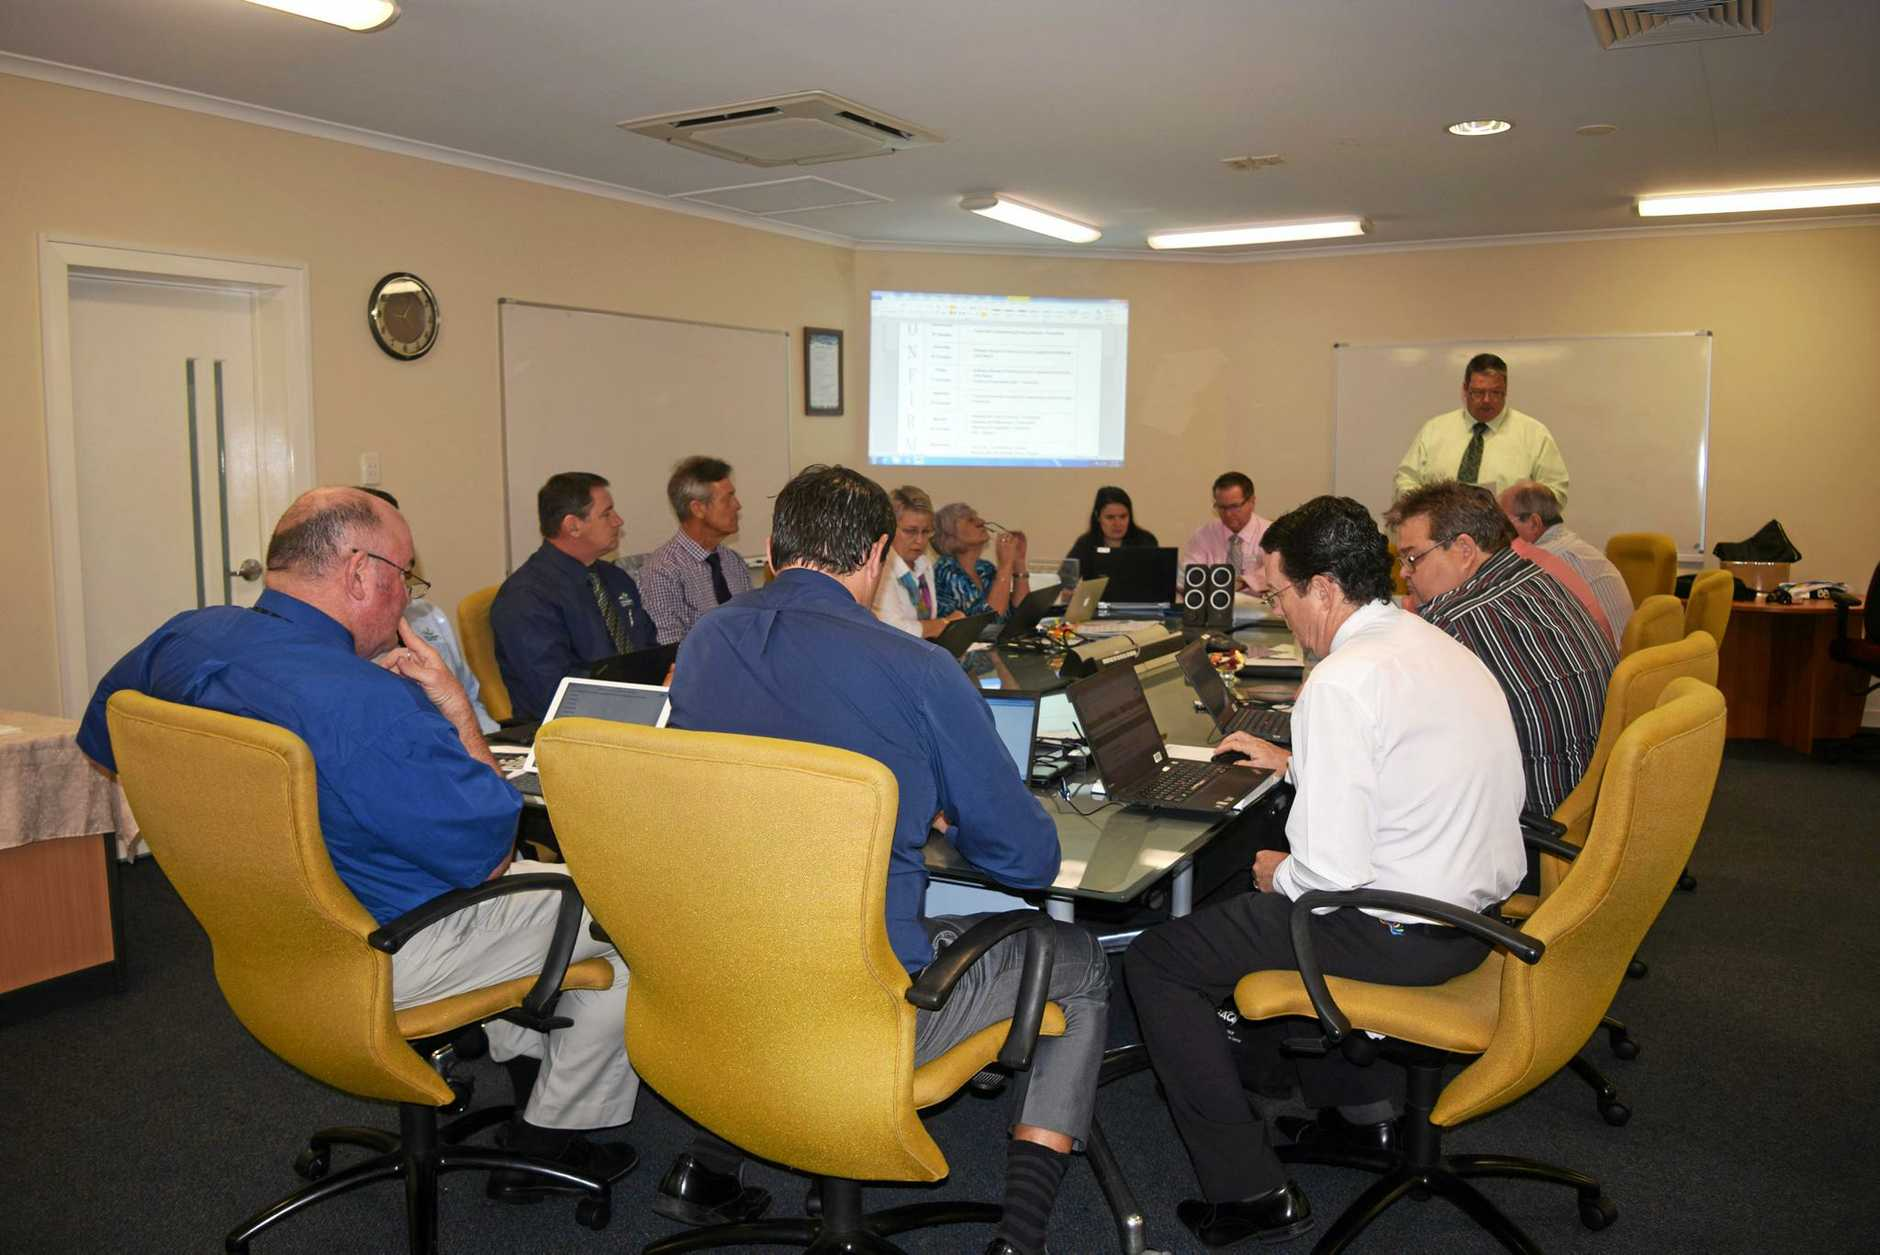 MEETING: Whitsunday Regional Council at a meeting this morning in Proserpine.